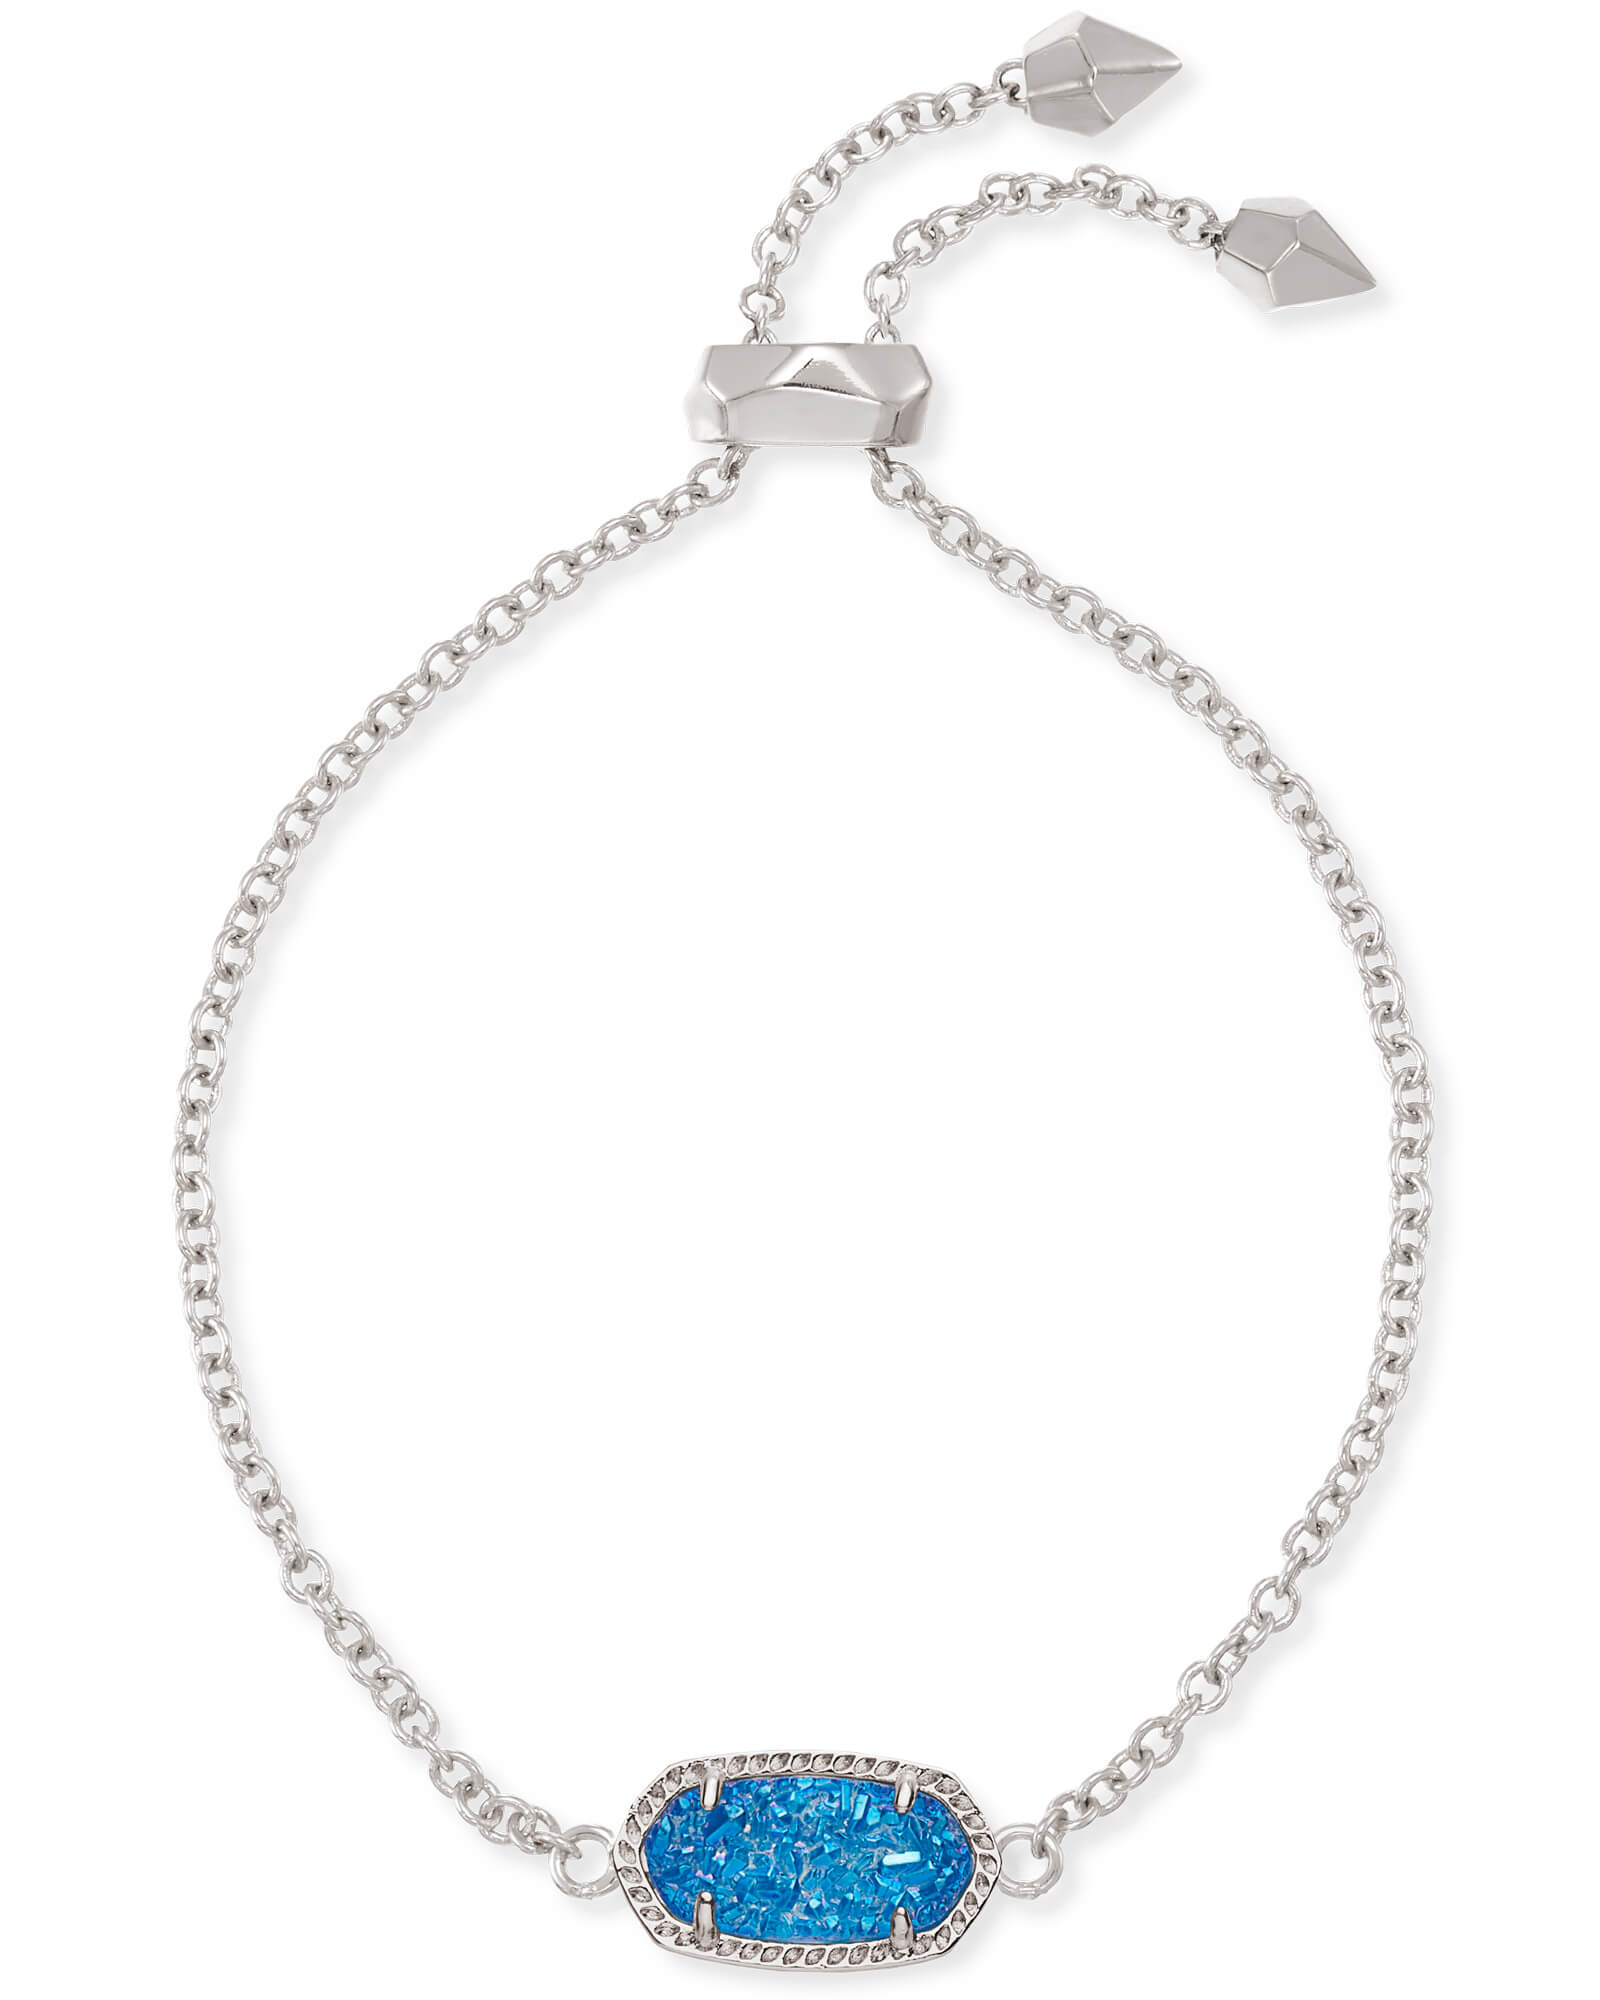 Elaina Silver Adjustable Chain Bracelet in Cobalt Drusy